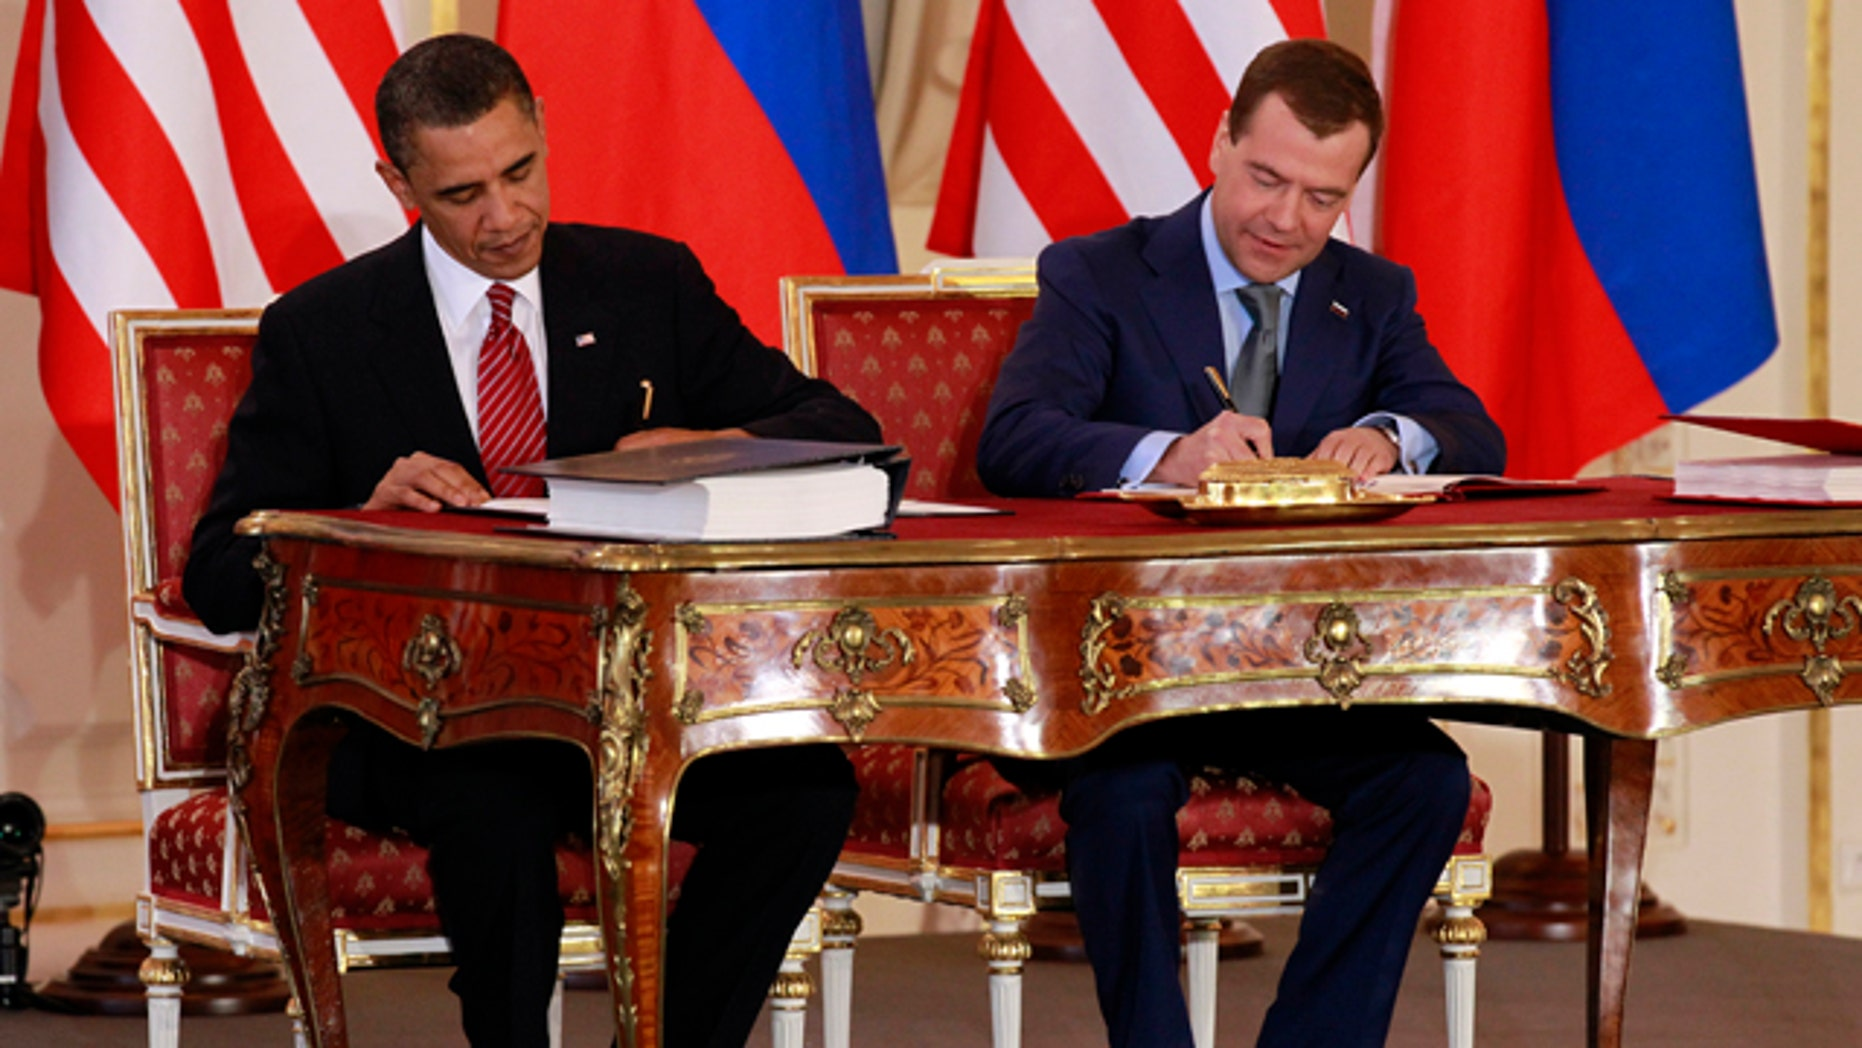 April 8, 2010 : President Obama and Russian President Dmitry Medvedev sign the New START in Prague. Obama warns that failure to ratify a new arms control treaty with Russia will undercut American leadership on scores of challenges it faces worldwide.